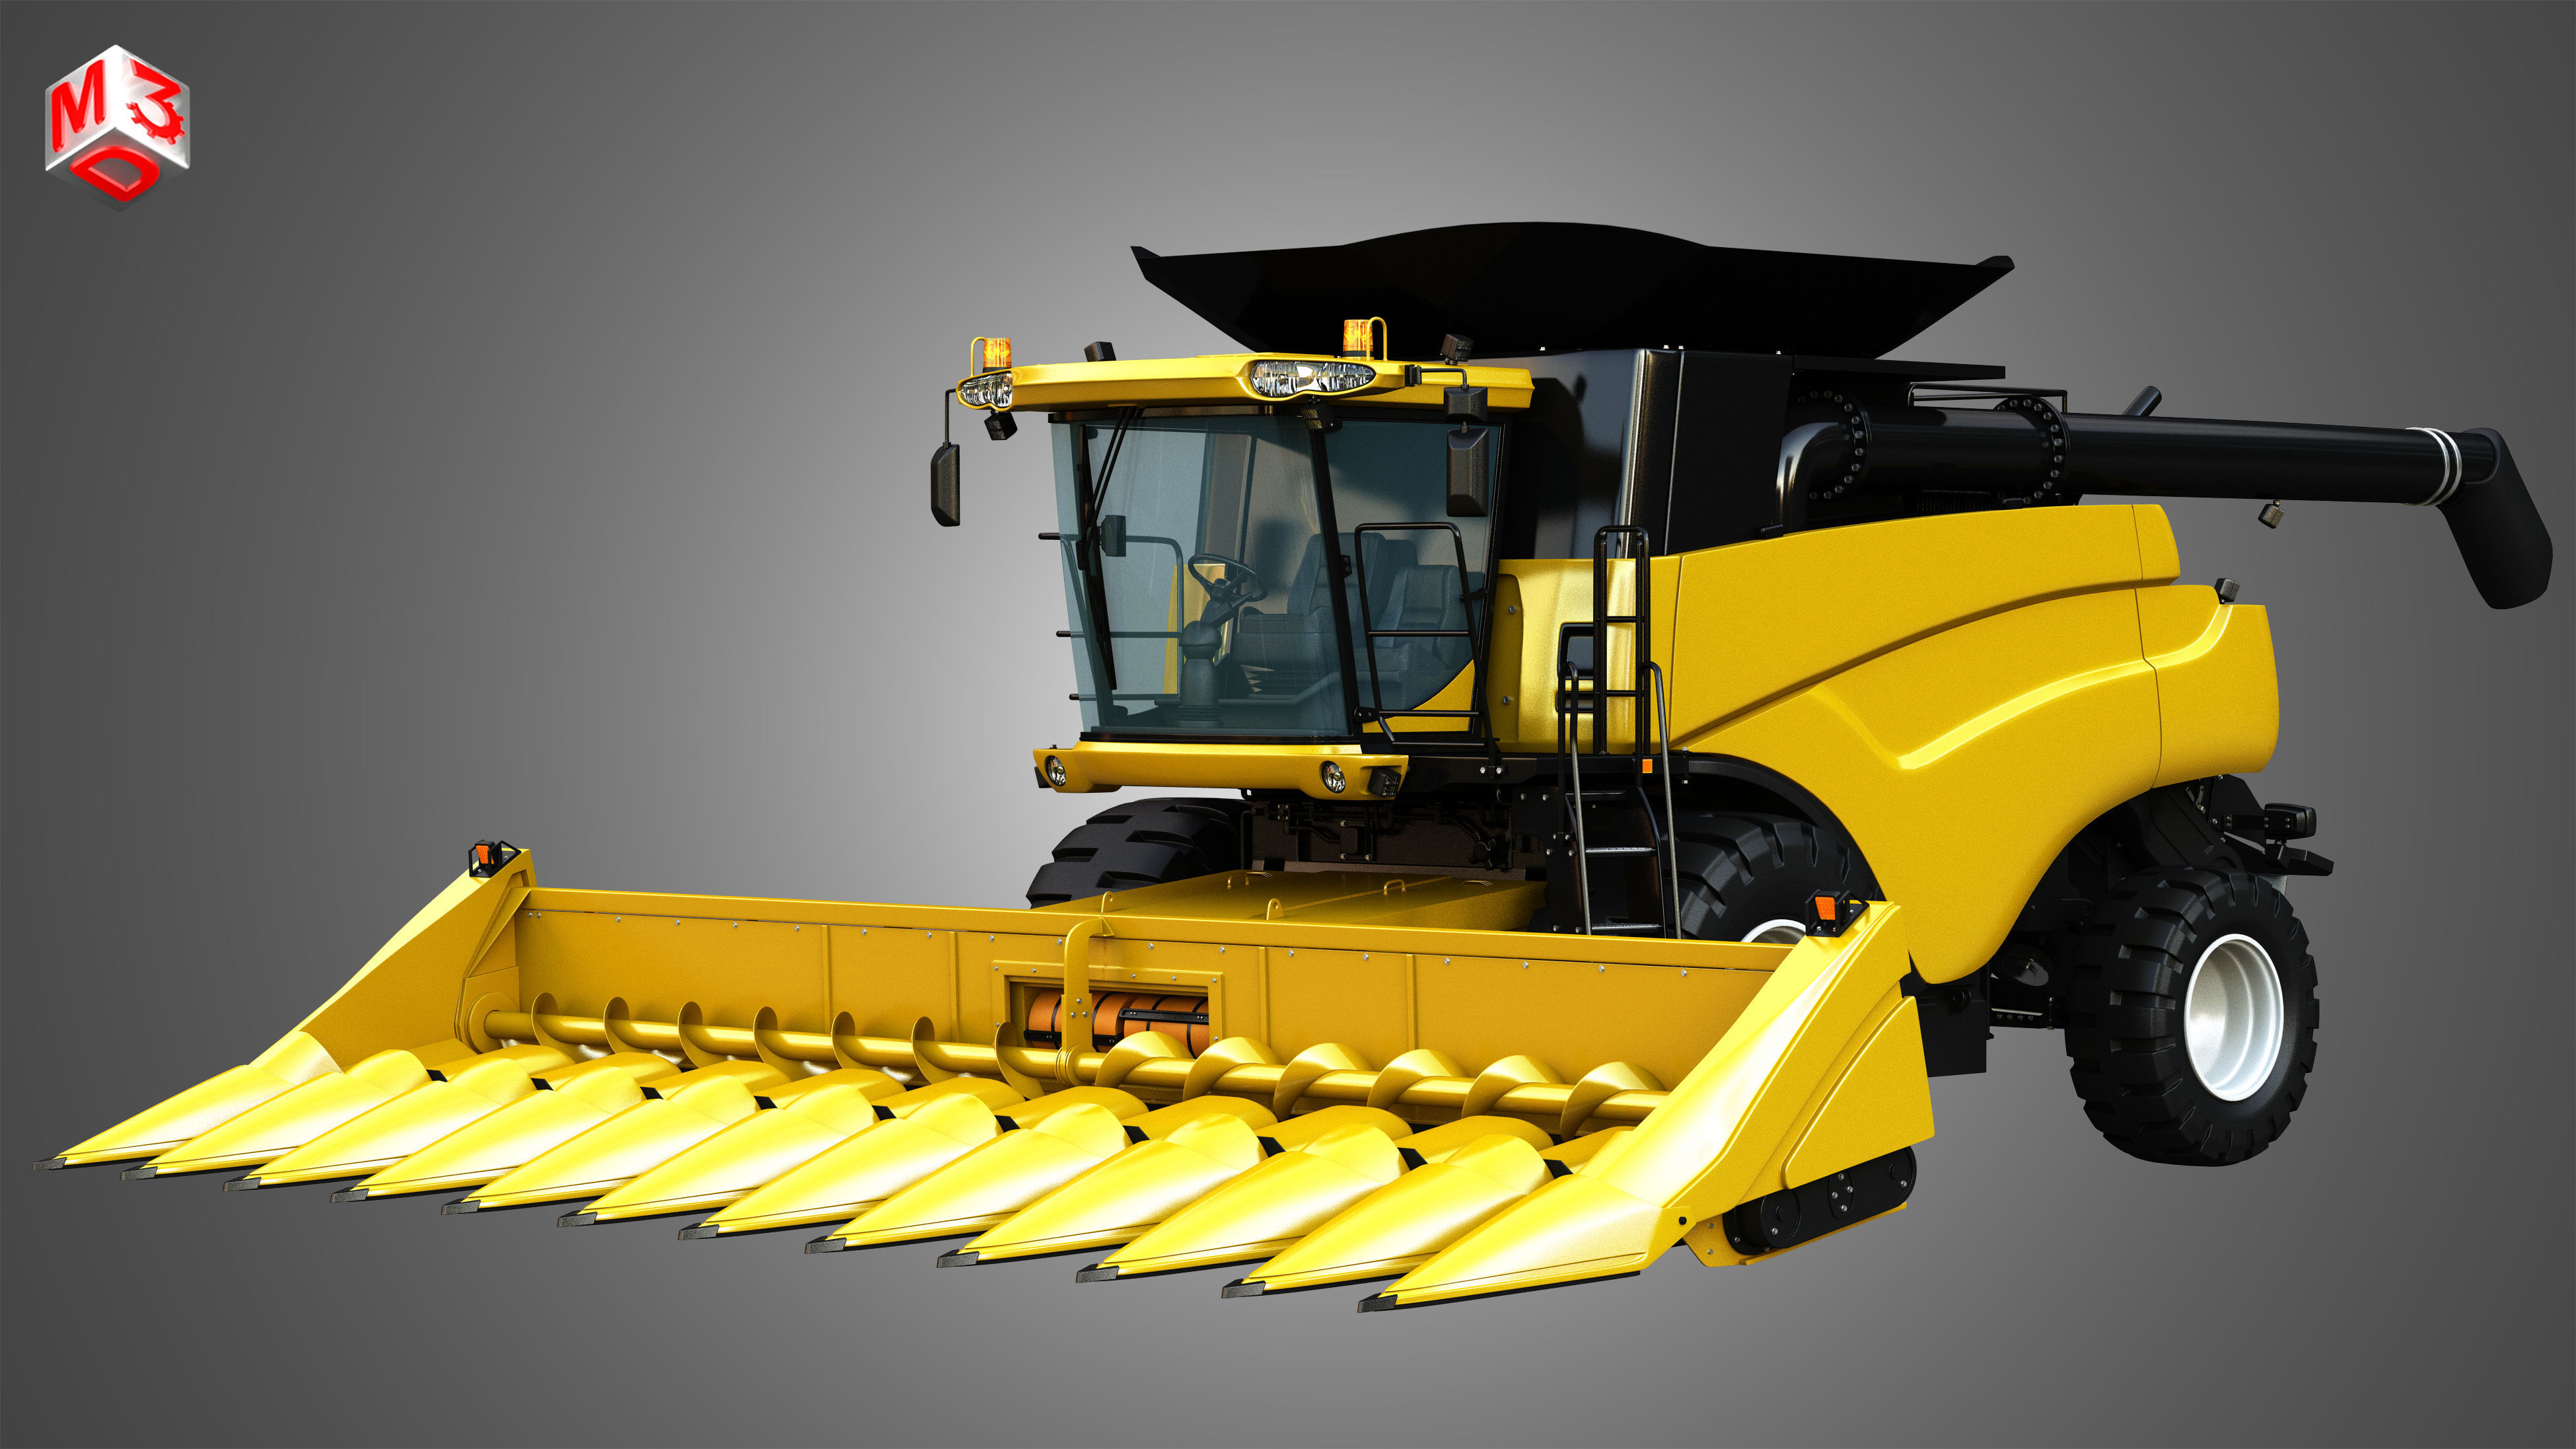 NH - CR 9070 Combine Harvester - With Corn Harvester Head